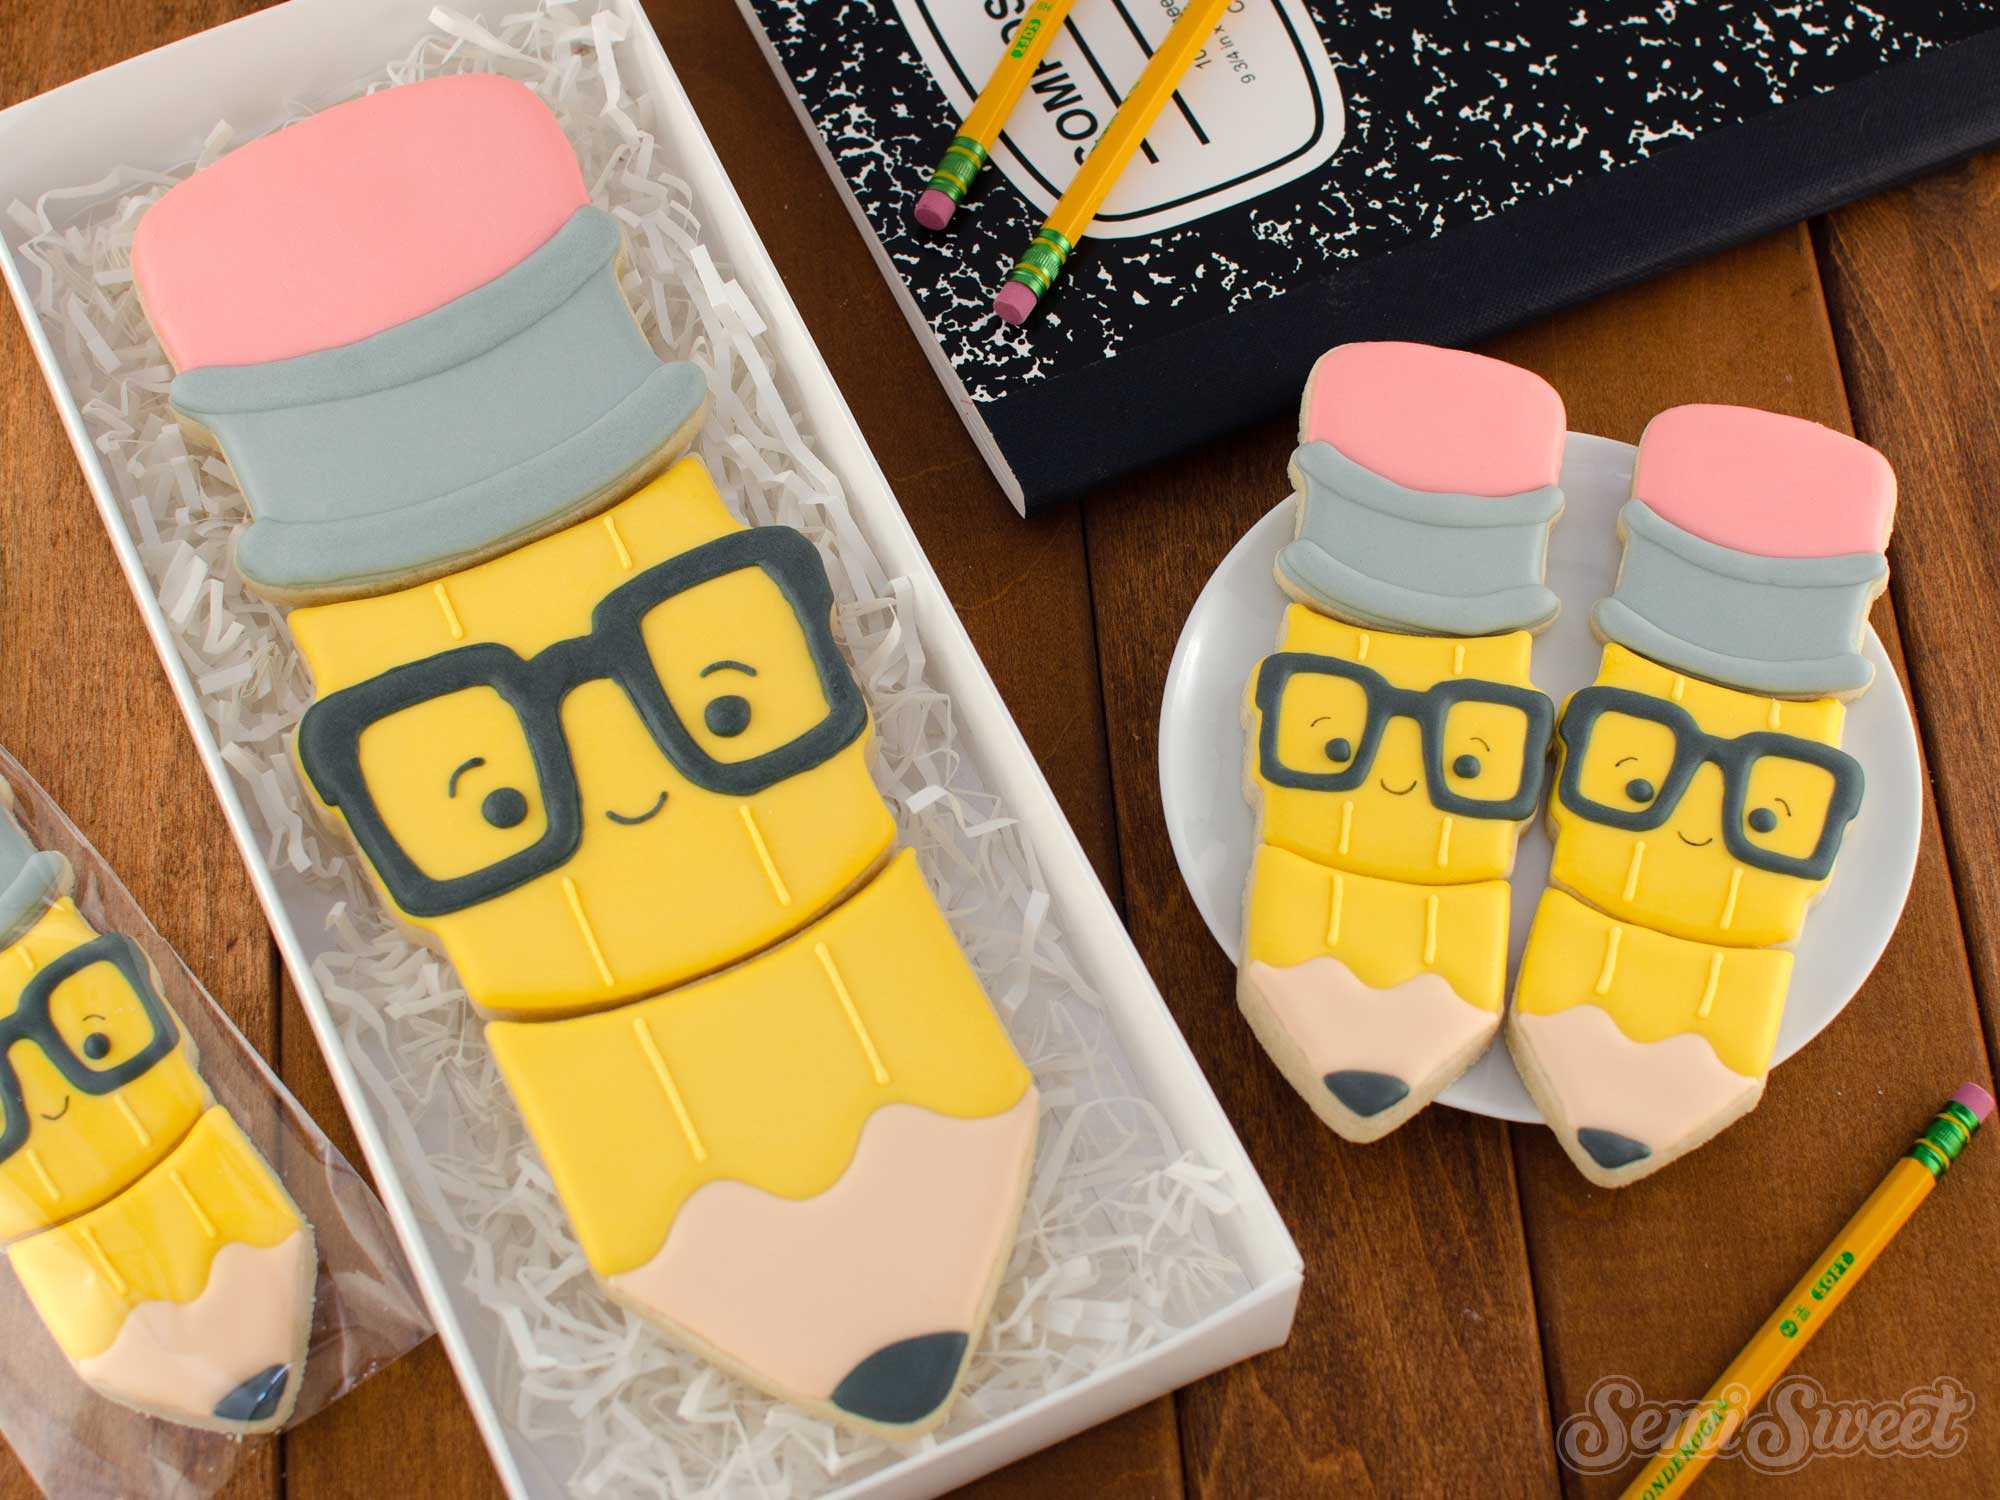 How to Make a Nerdy Pencil Cookie Set